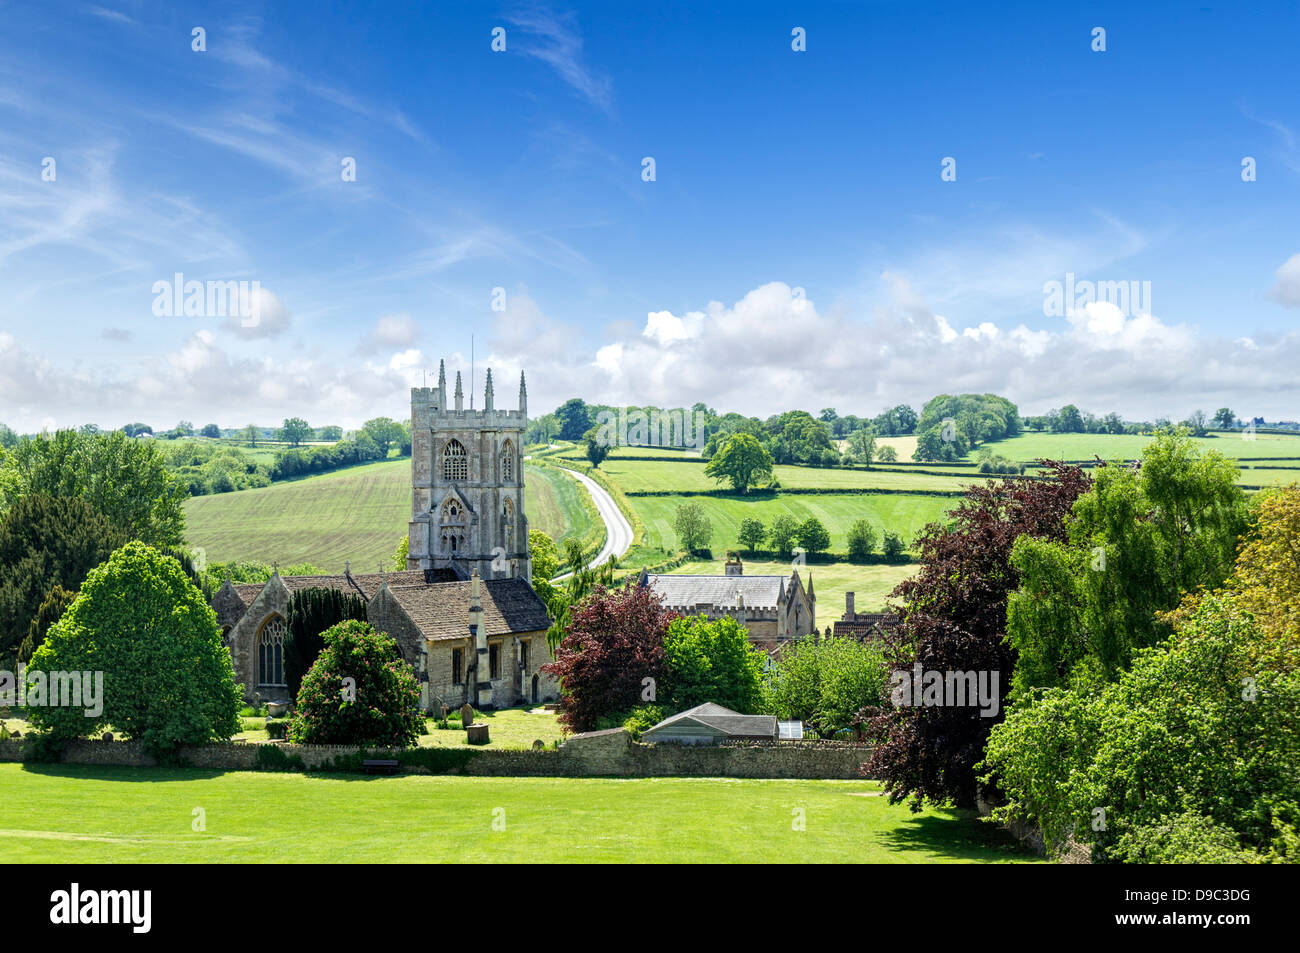 Typical old English country church and English countryside at Norton St Philip, Somerset, England, UK - Stock Image